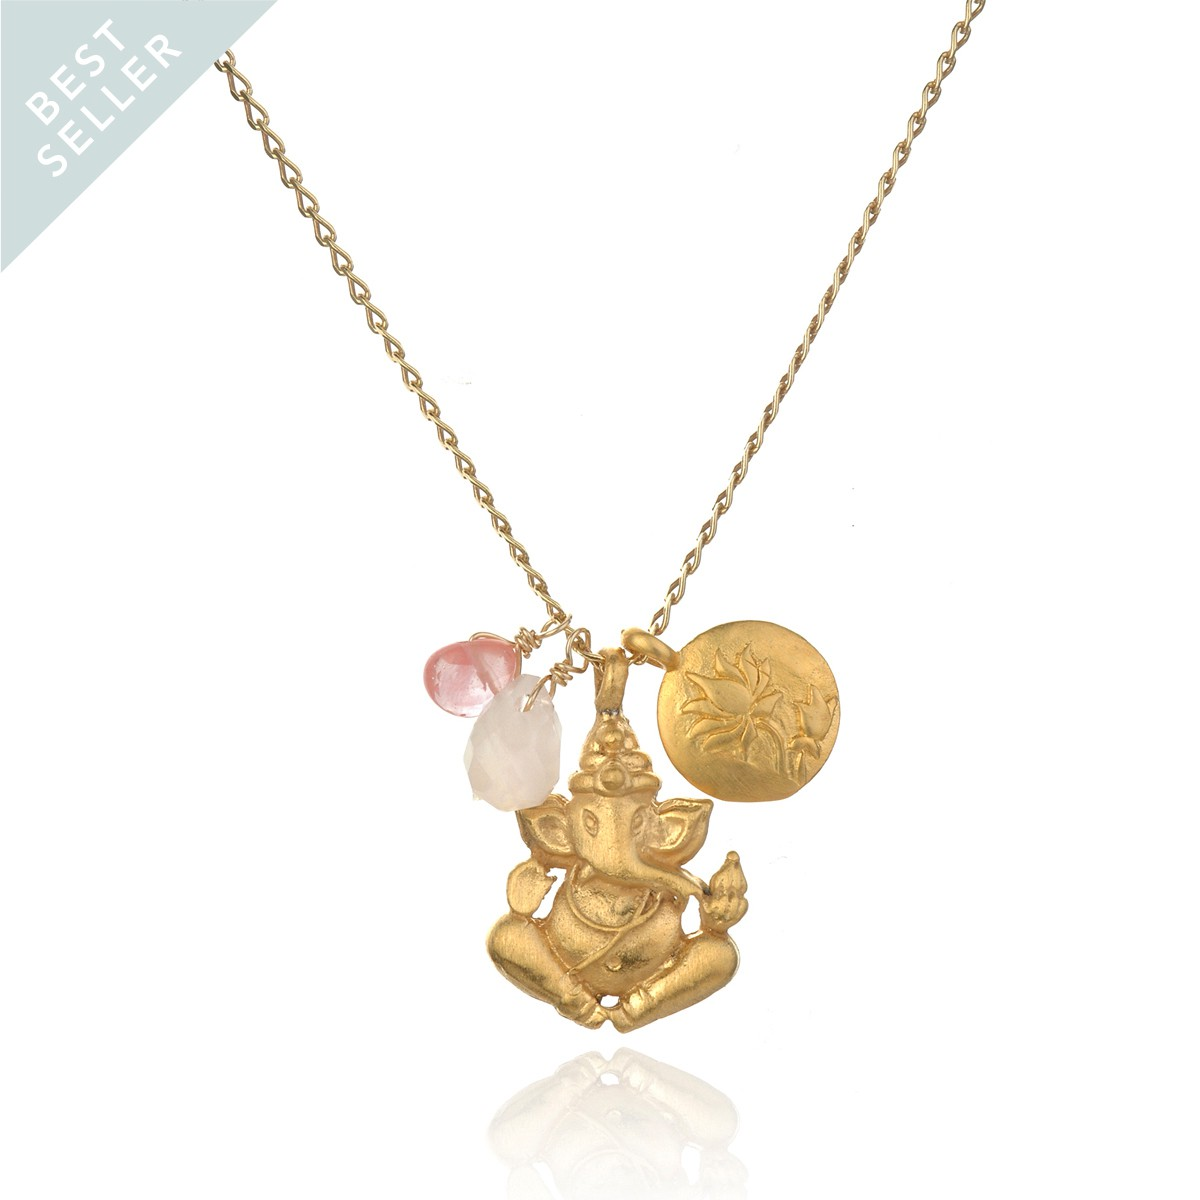 Satya Gold Rose And Cherry Quartz Ganesha Lotus Necklace - Clear The Path